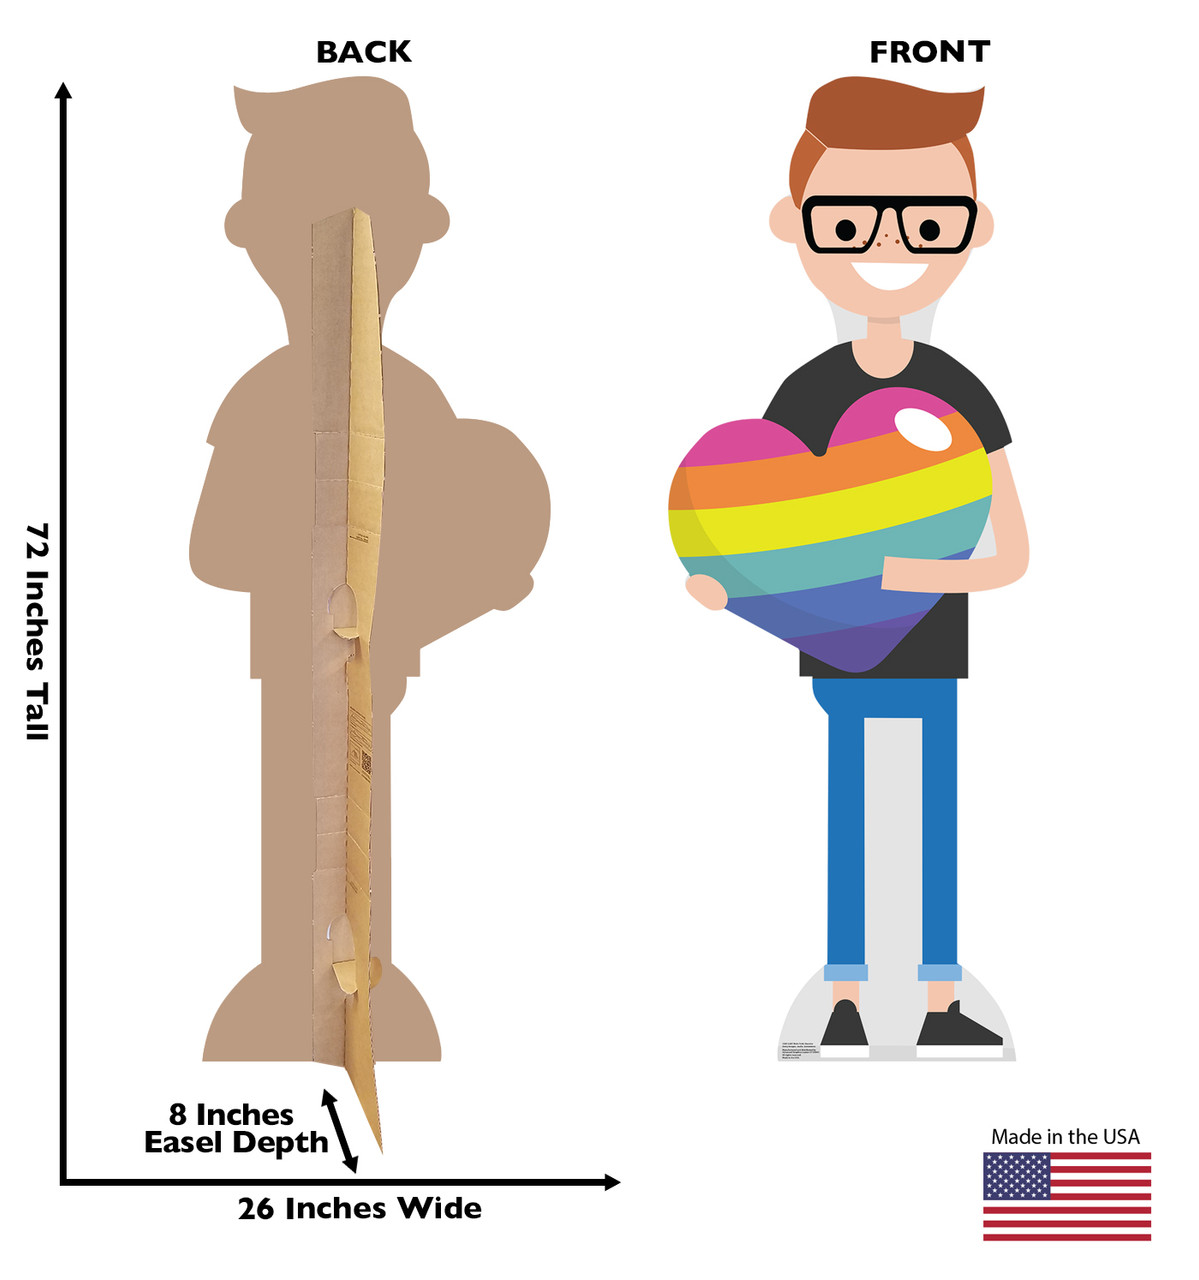 Life-size cardboard Male Cartoon Pride Standee with back and front dimensions.